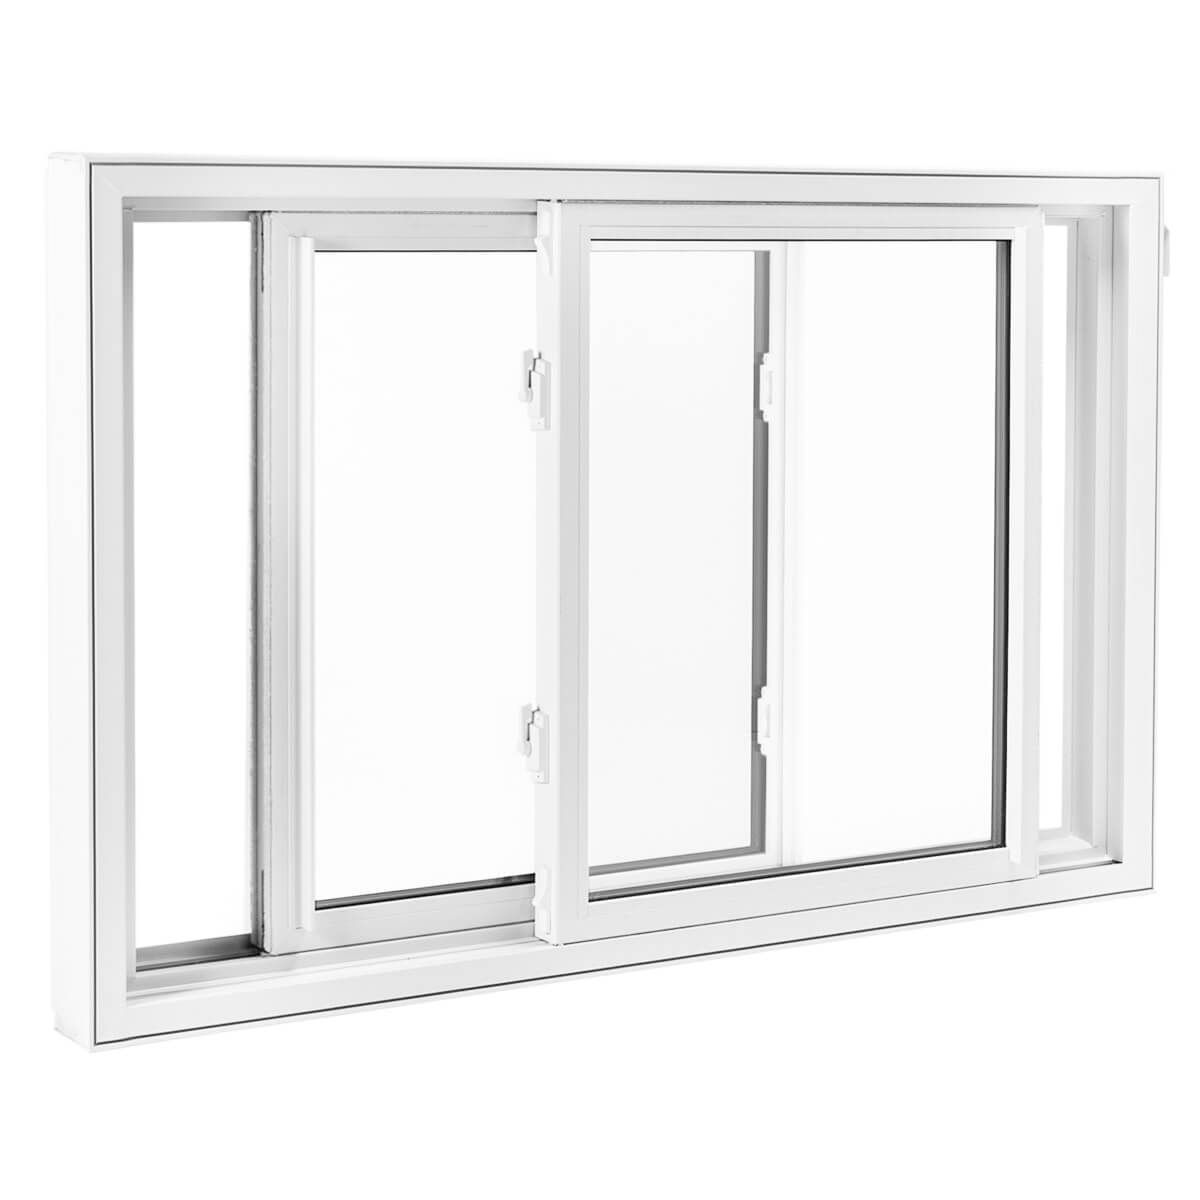 Replacement Windows Premium Vinyl Windows Centennial